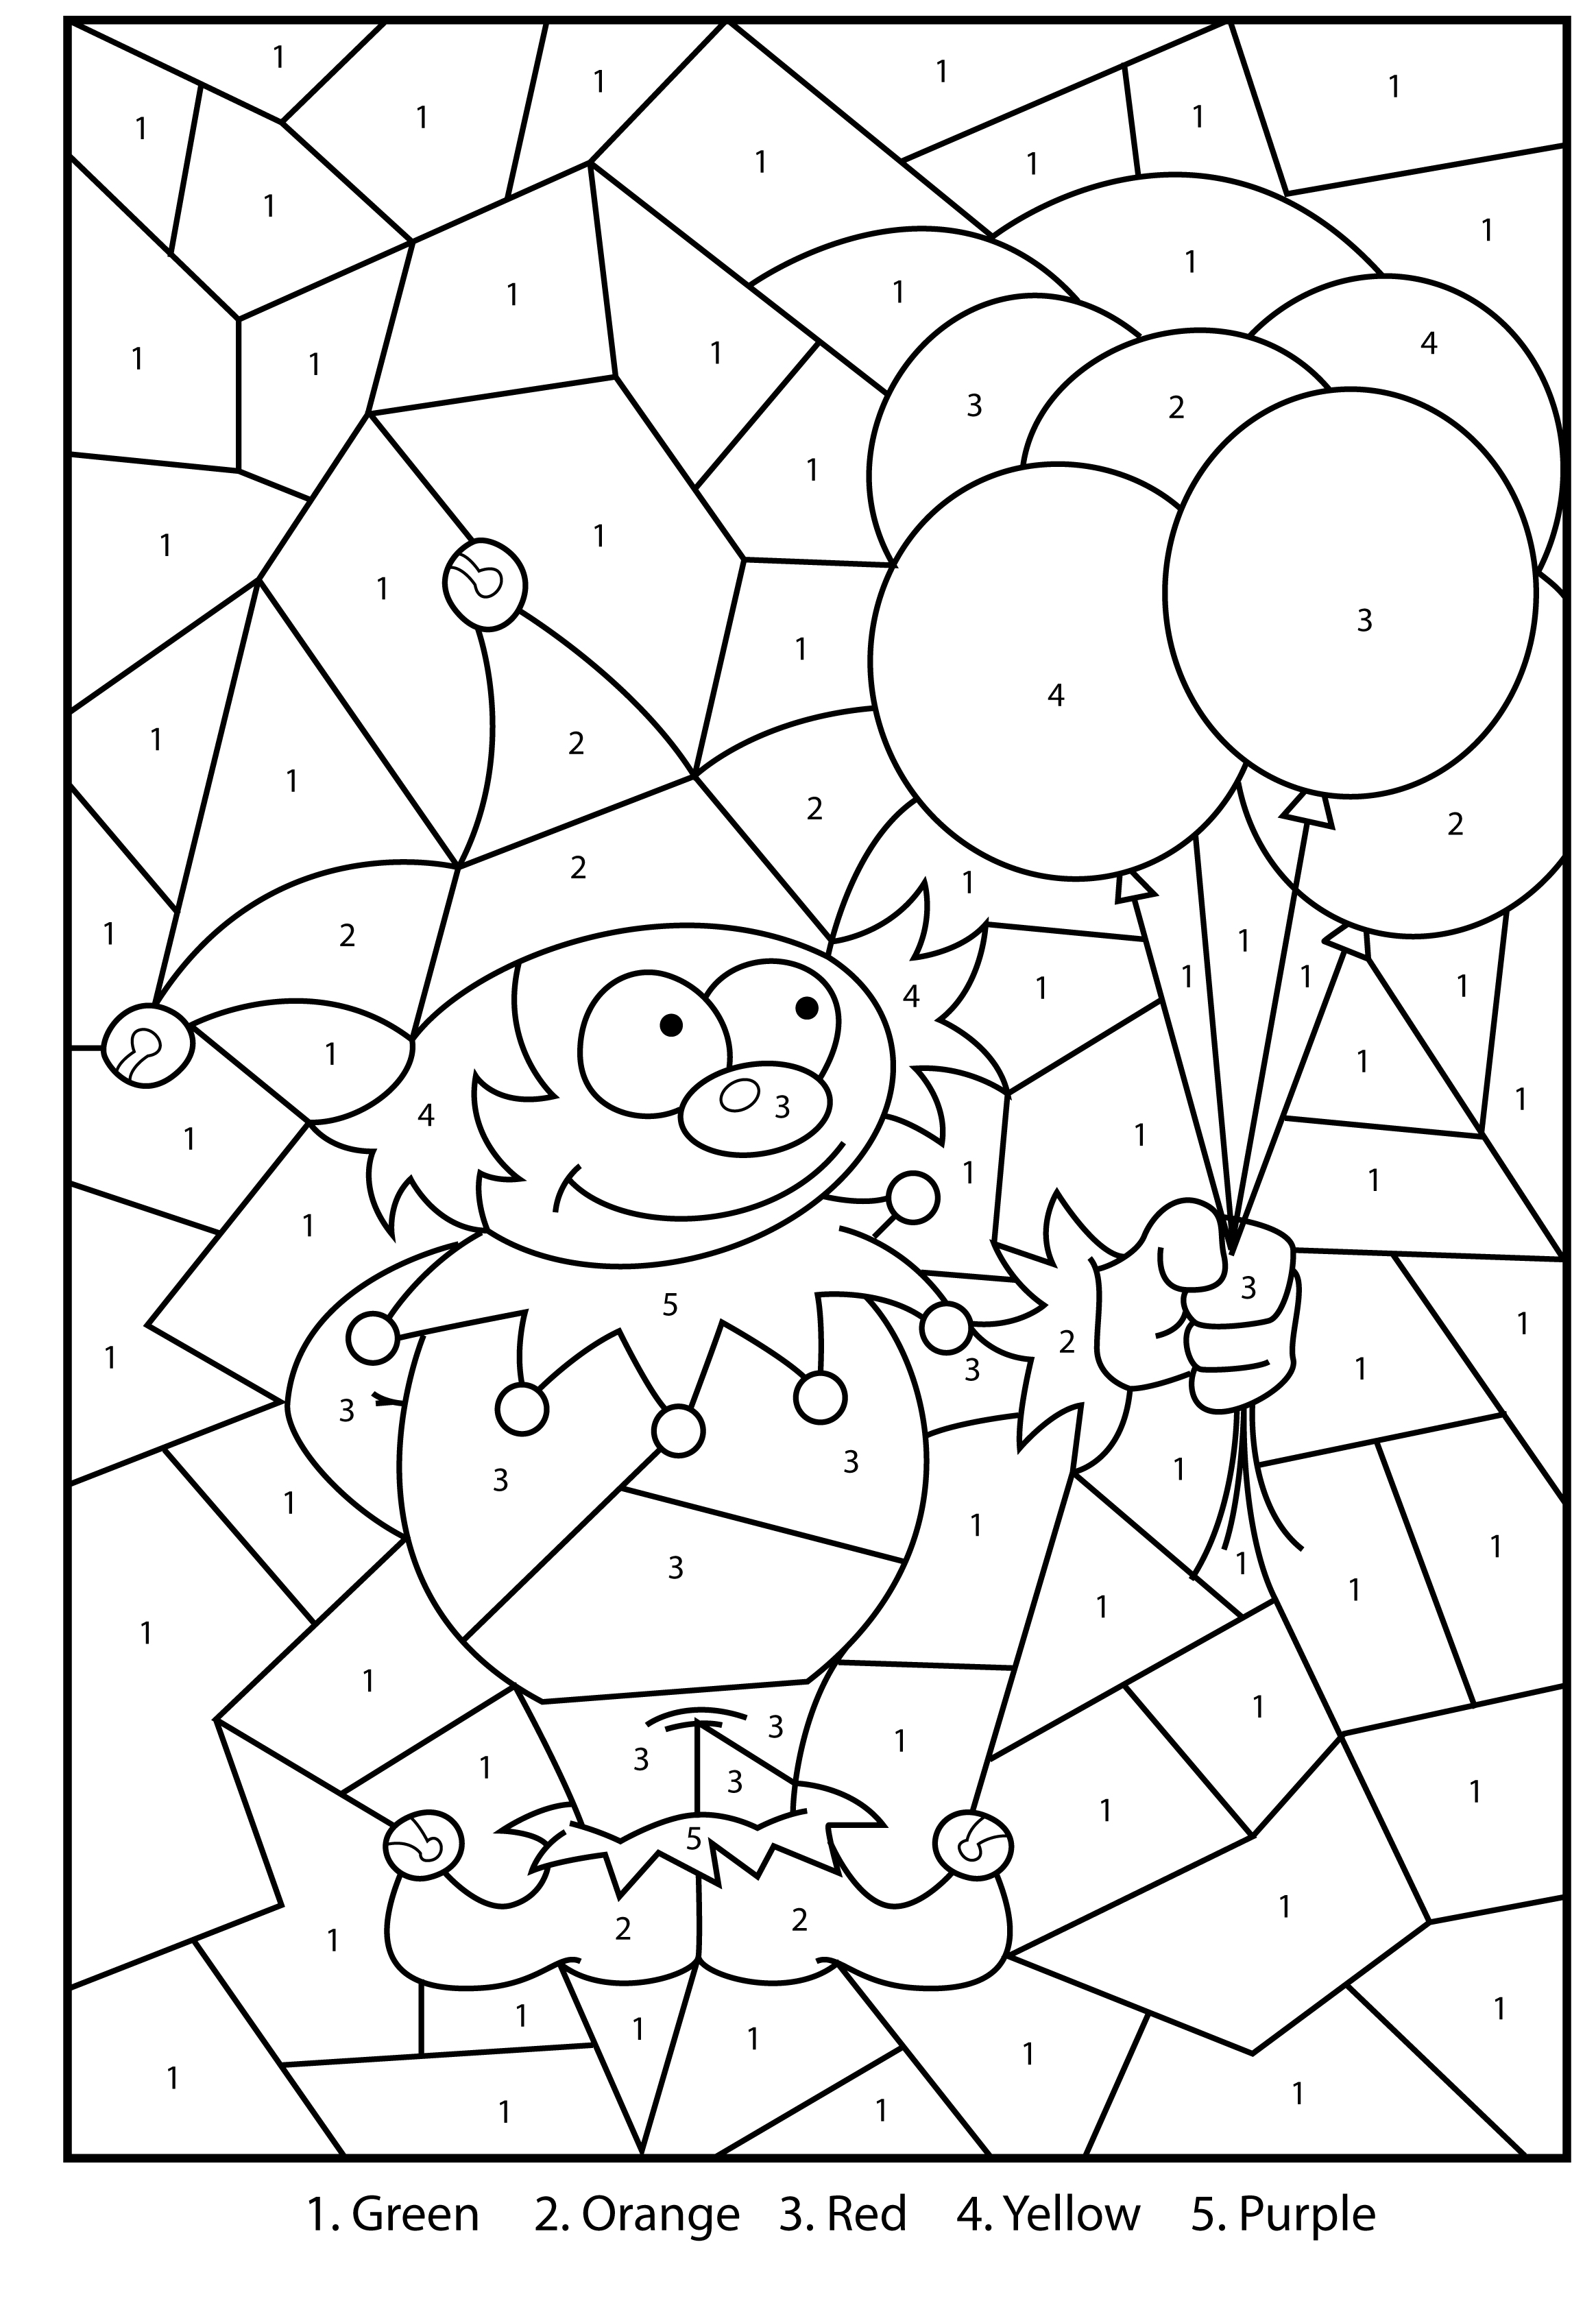 coloring sheets with numbers free printable color by number coloring pages best numbers sheets with coloring